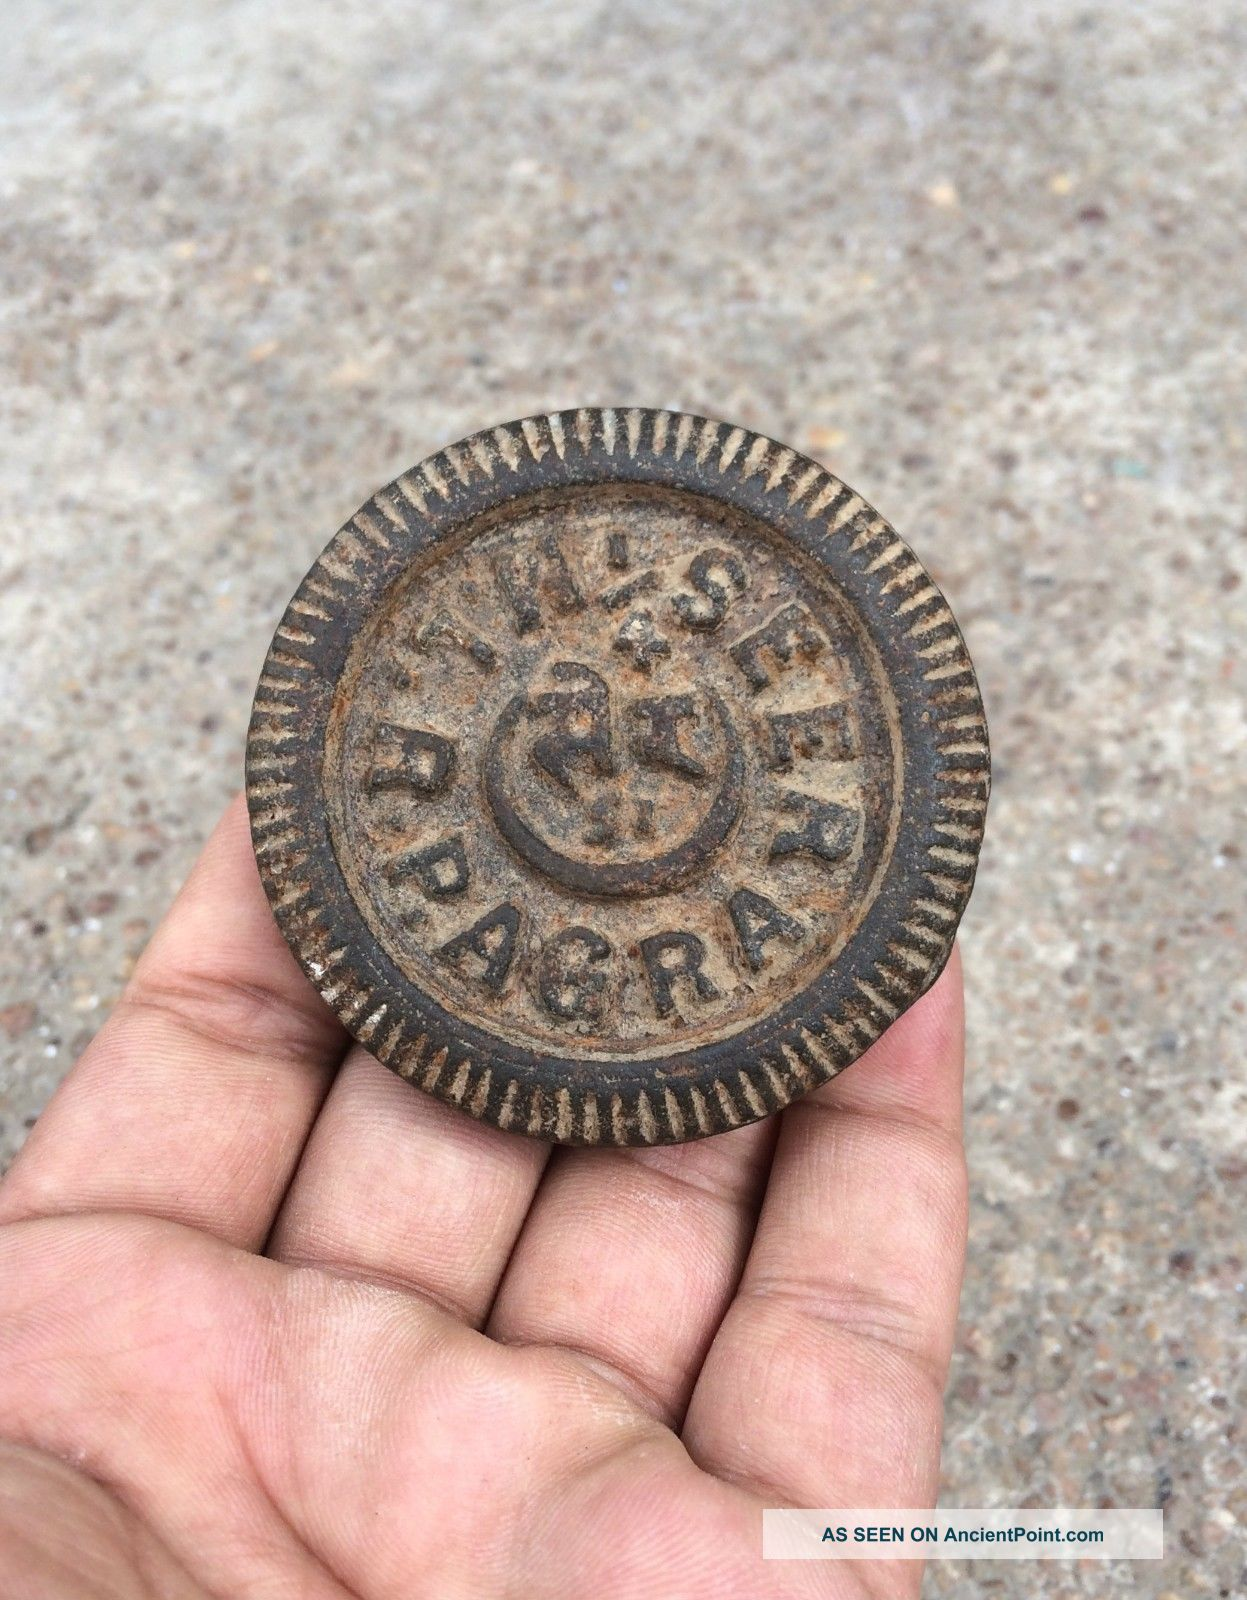 Antique Iron Casted 1/4 Seers Agra Engraved Mercantile Measuring Weight Other Mercantile Antiques photo